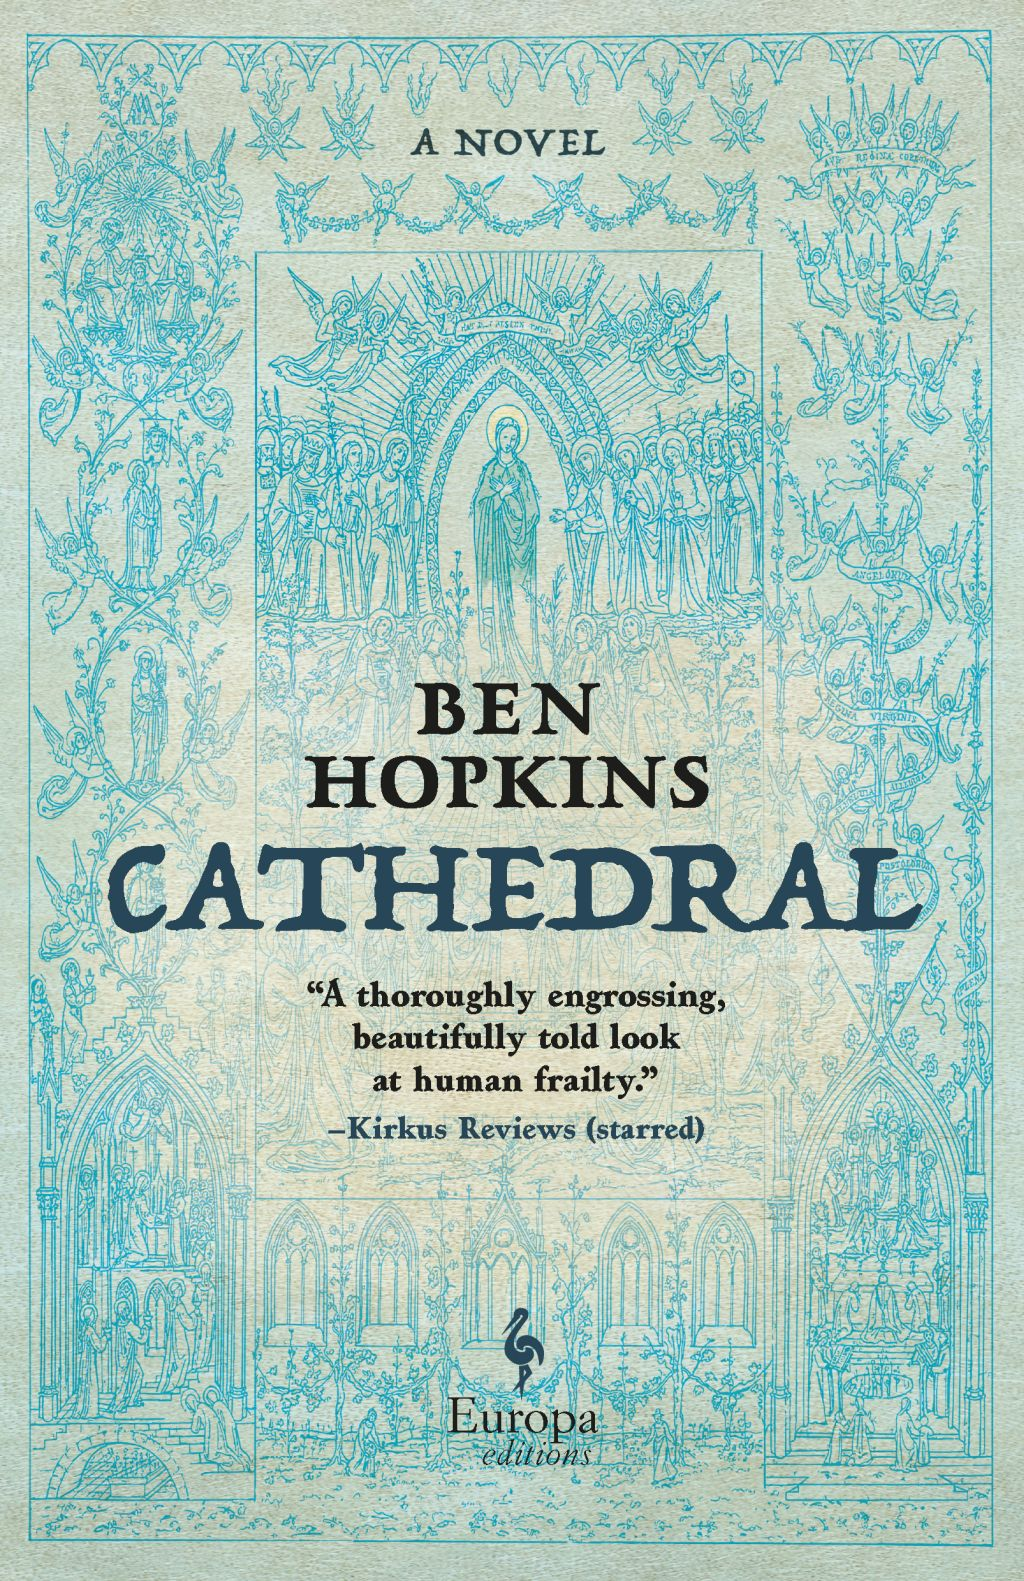 Cathedral by Ben Hopkins (Europa Editions)